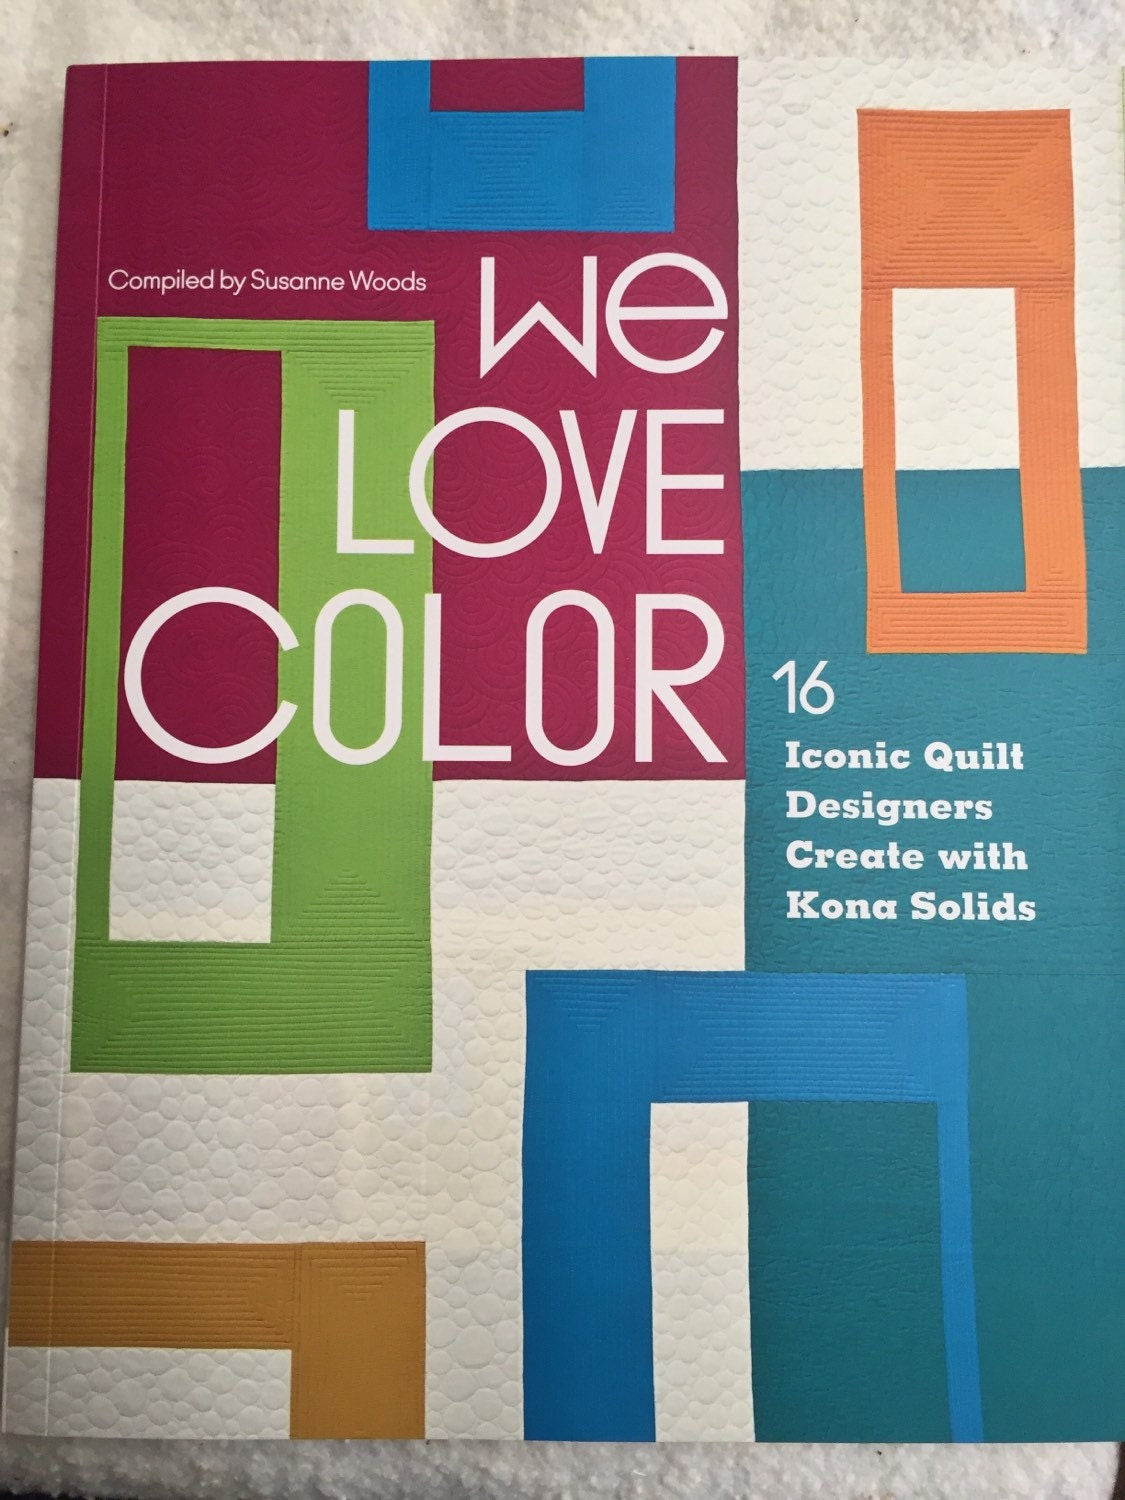 Book for color theory - Book On Color Theory Idea Book Color Theory Sold By Kqcreations